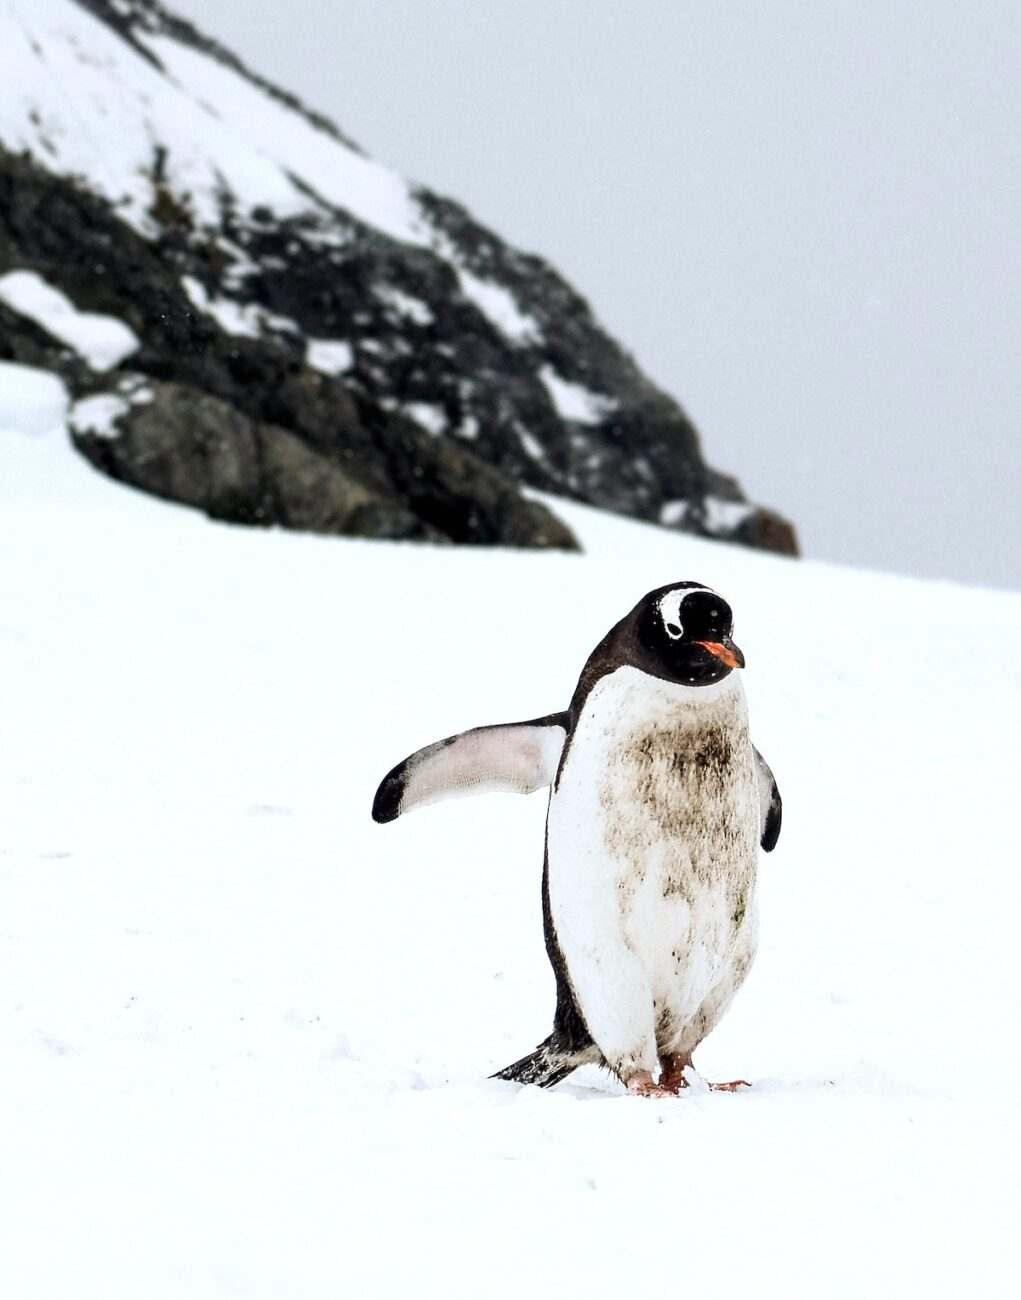 Working in Antarctica as a Polar Expedition Guide   Packs Light